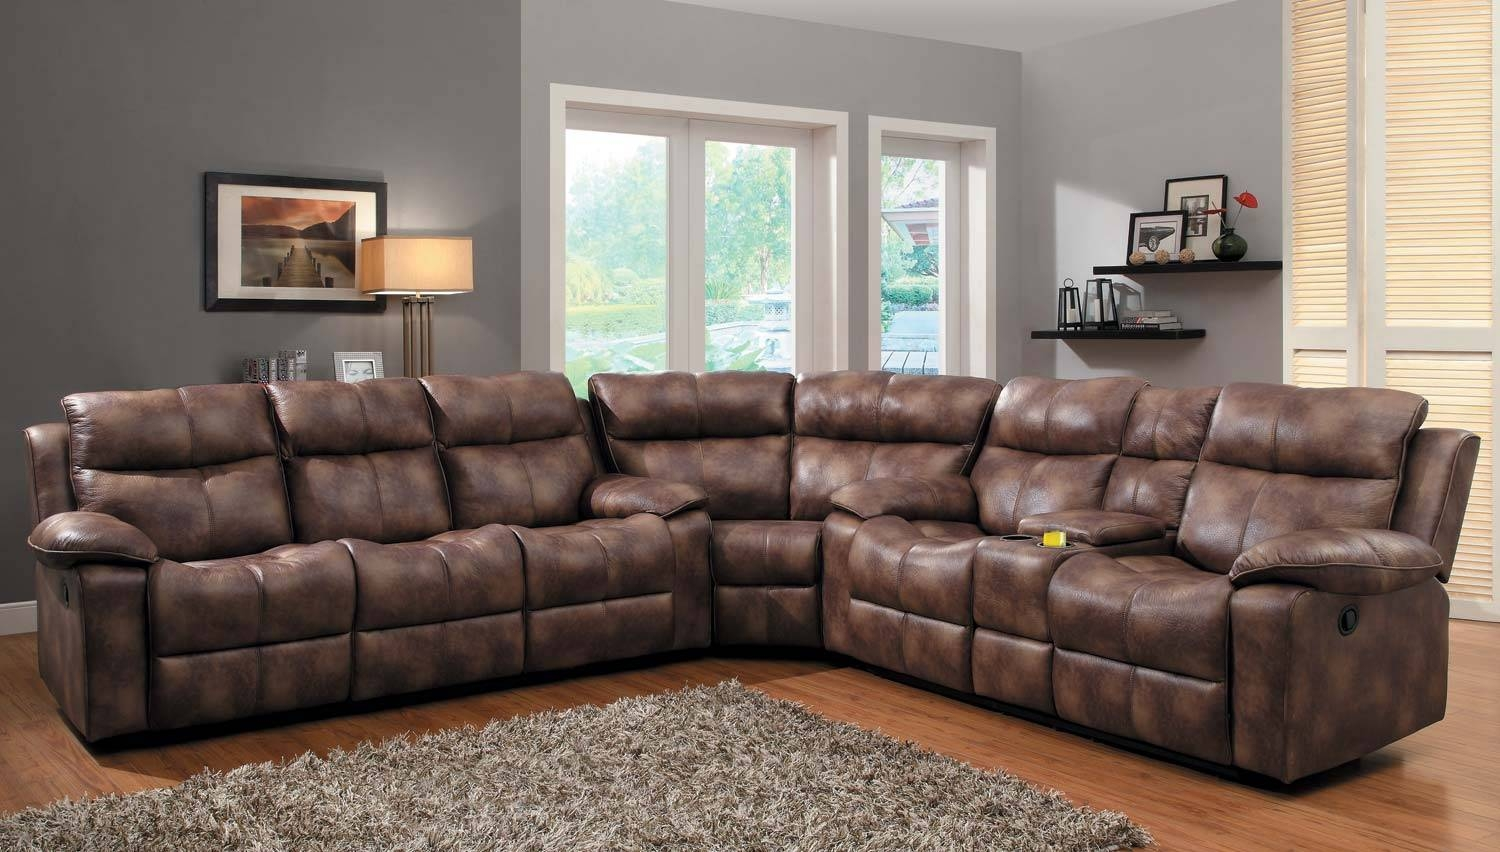 Furniture: Inspiring Reclining Sectional For Living Room Furniture throughout Curved Sectional Sofas With Recliner (Image 8 of 15)